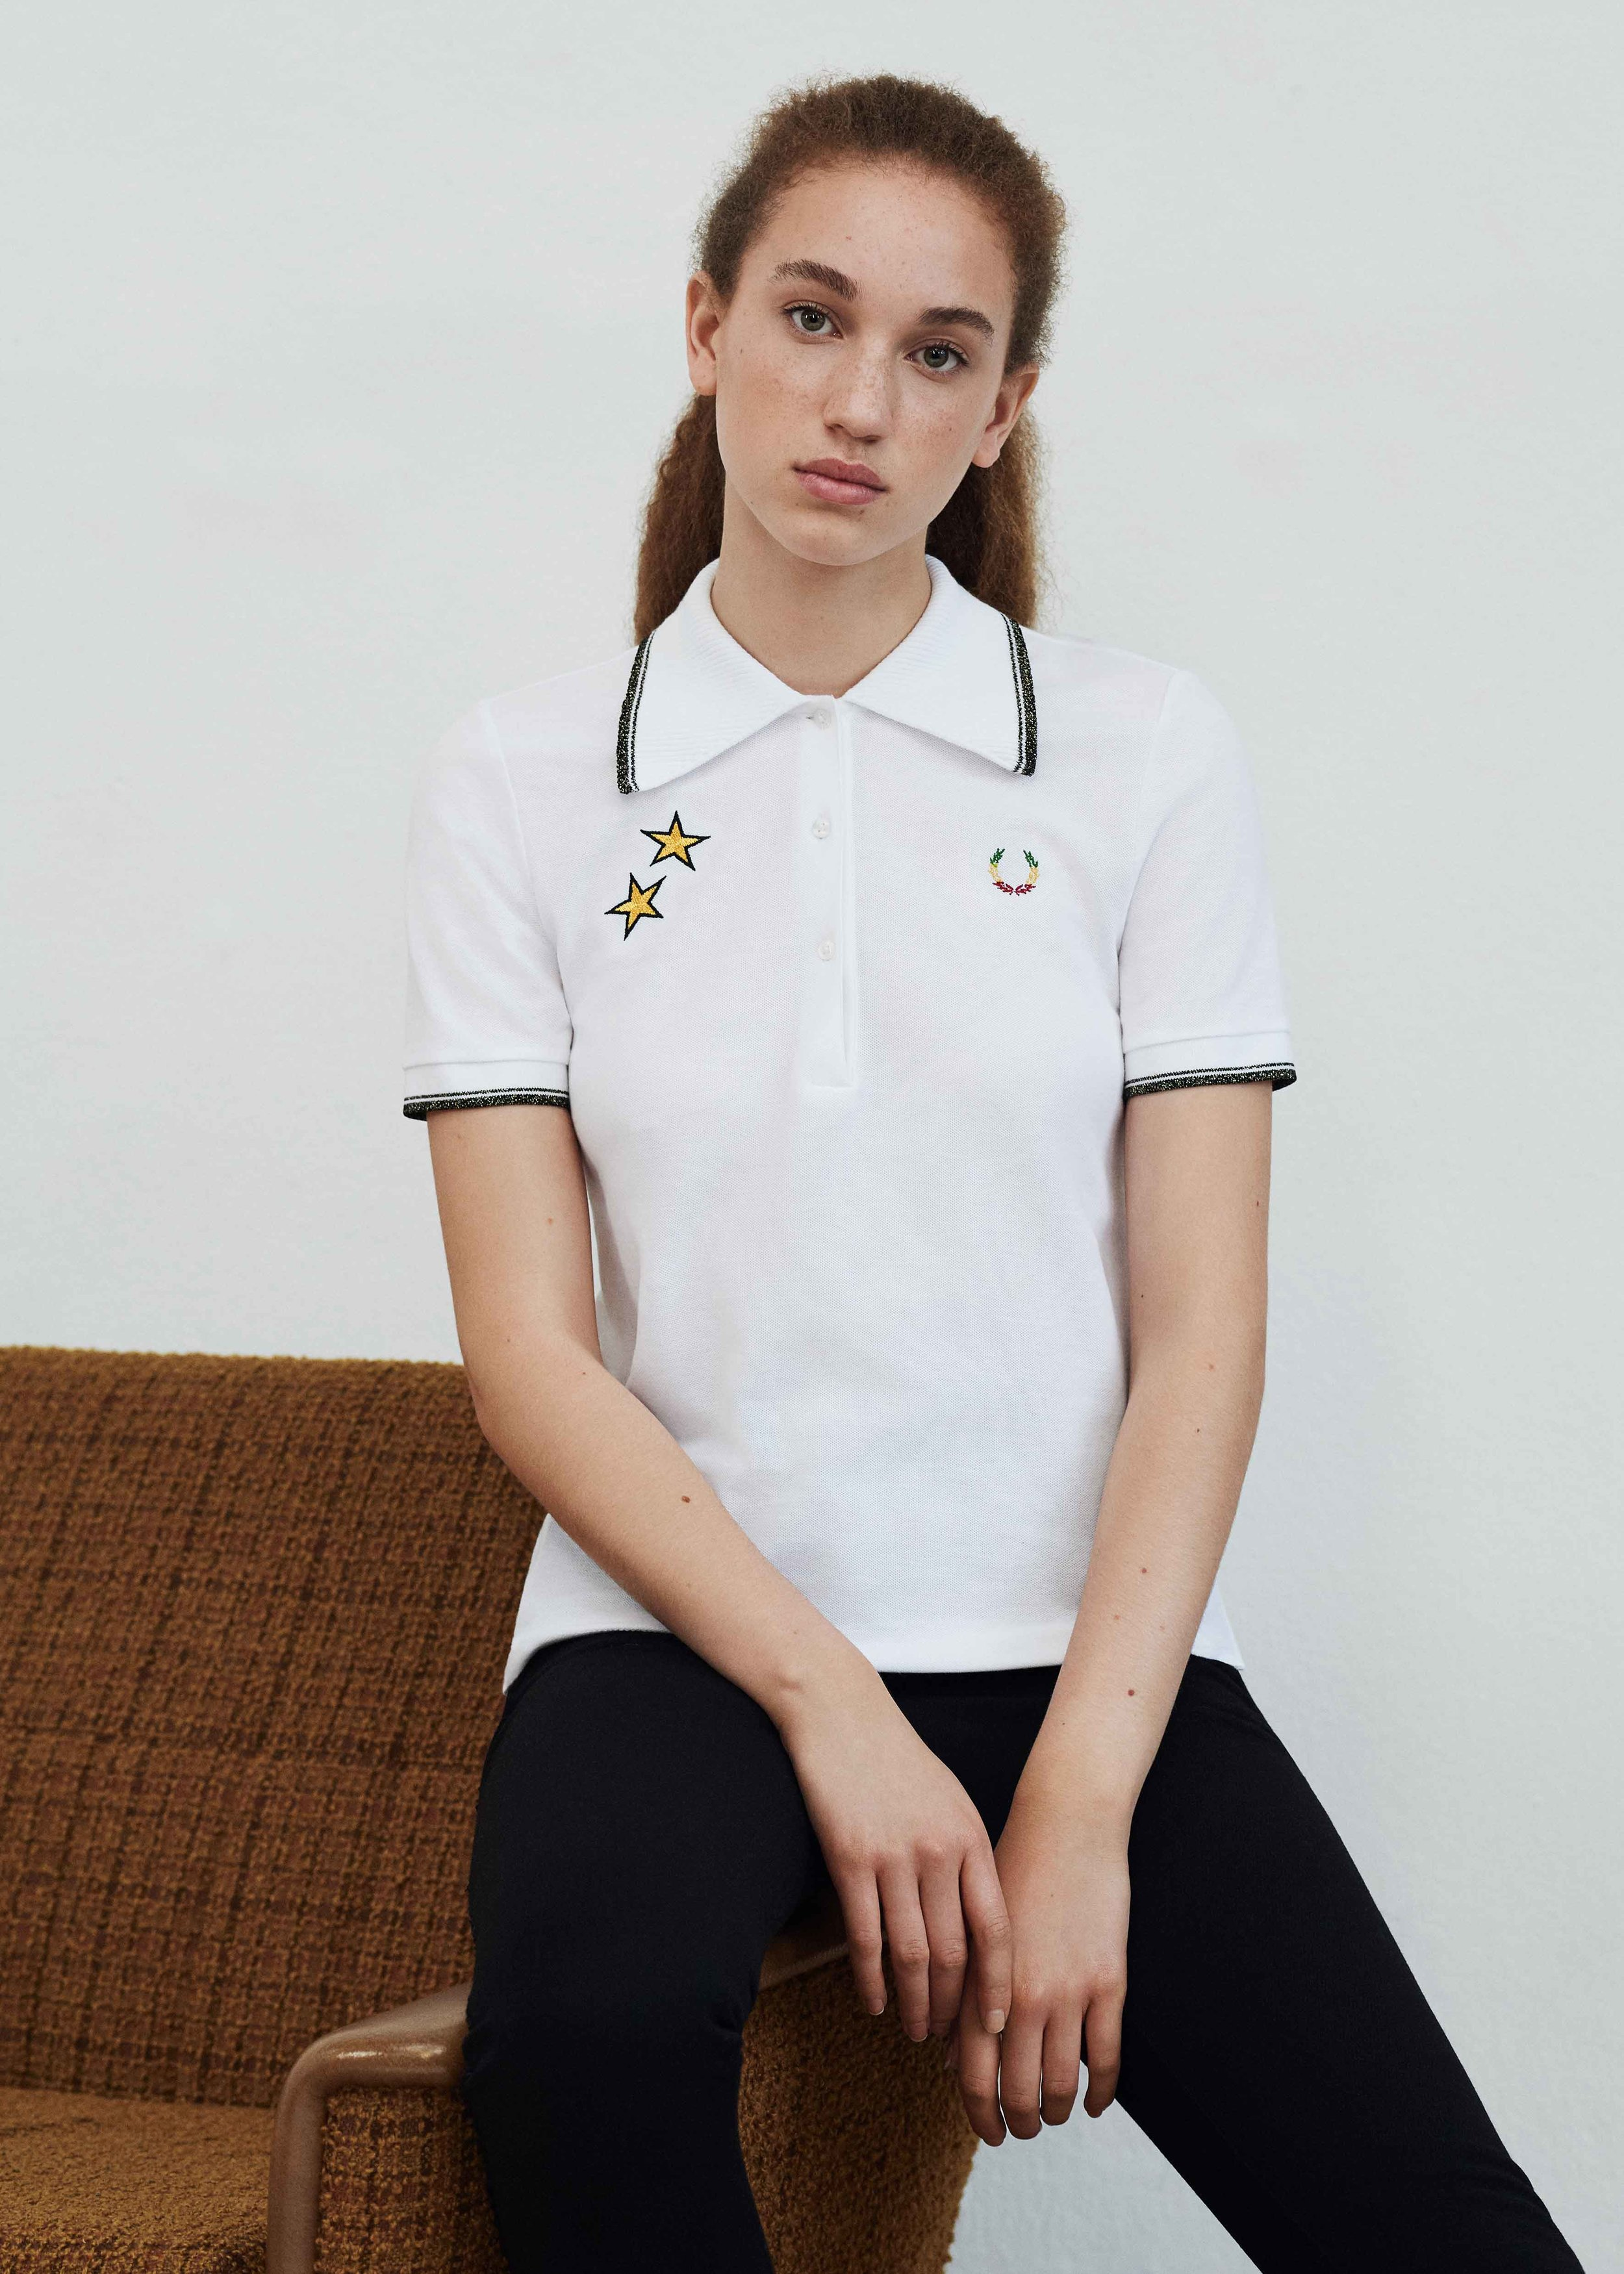 Star Embroidered Piqué Polo Shirt by FRED PERRY x BELLA FREUD for € 120,–.